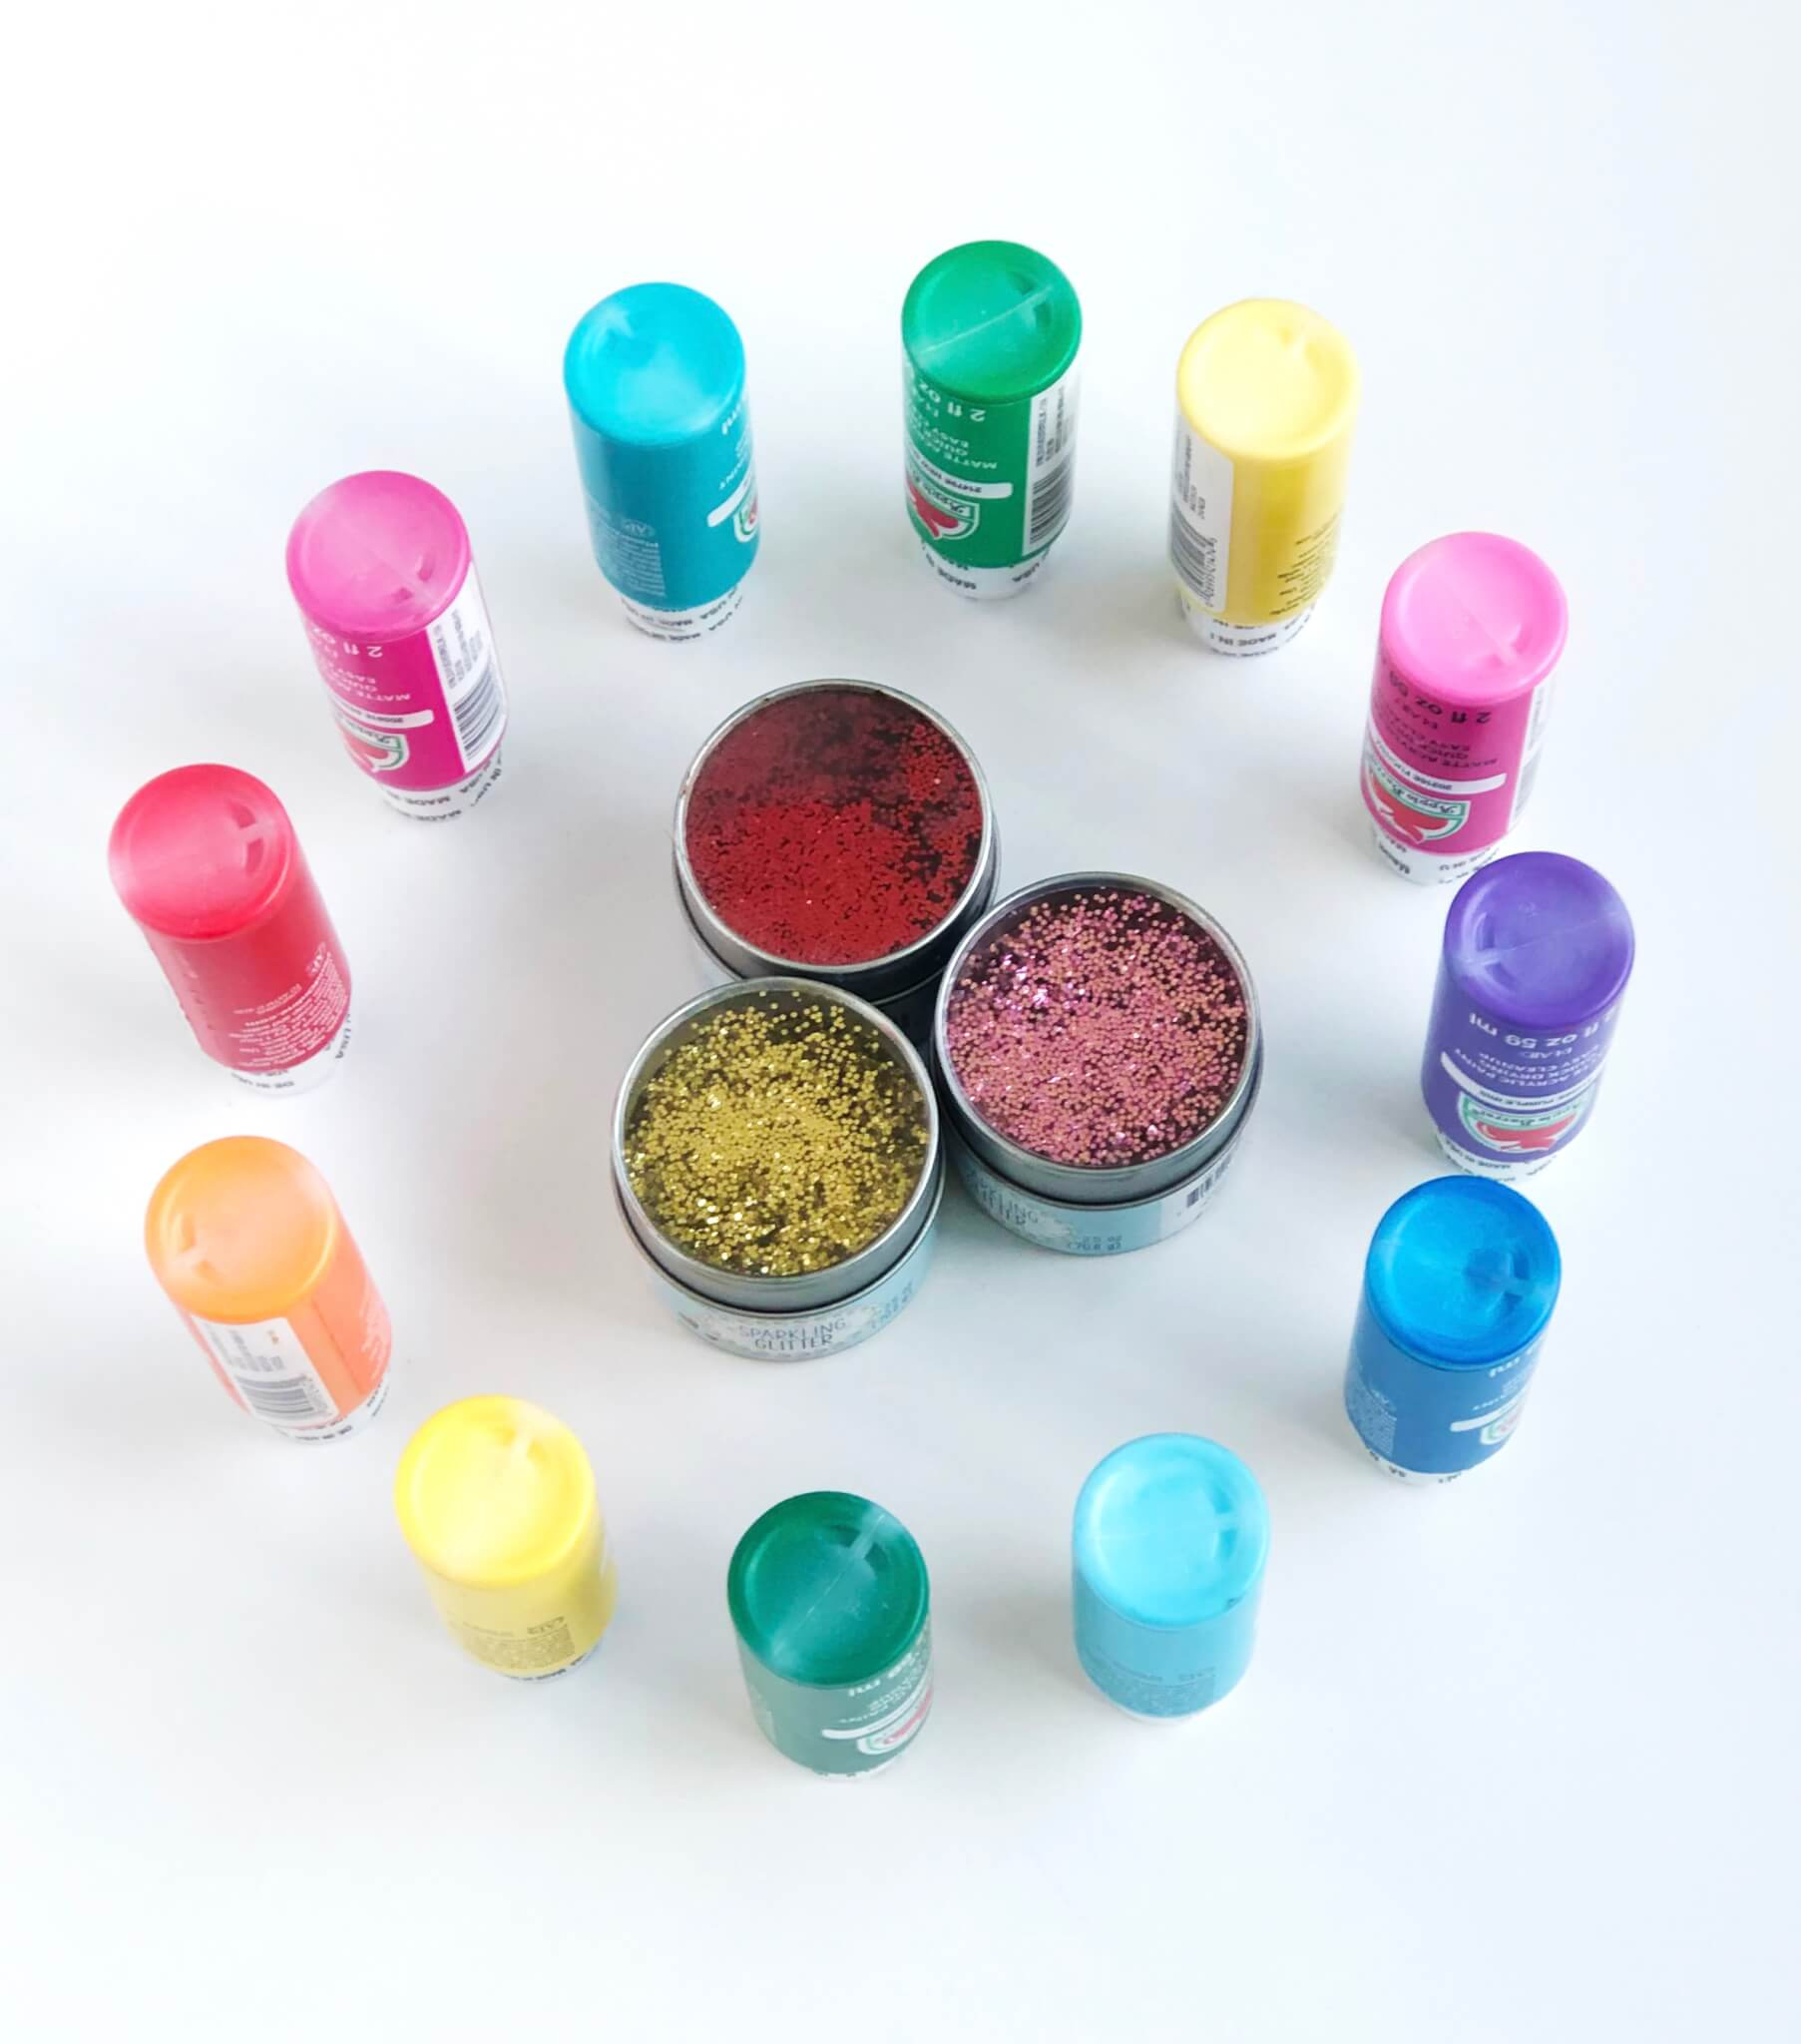 Craft supply with Acrylic craft paint and glitter